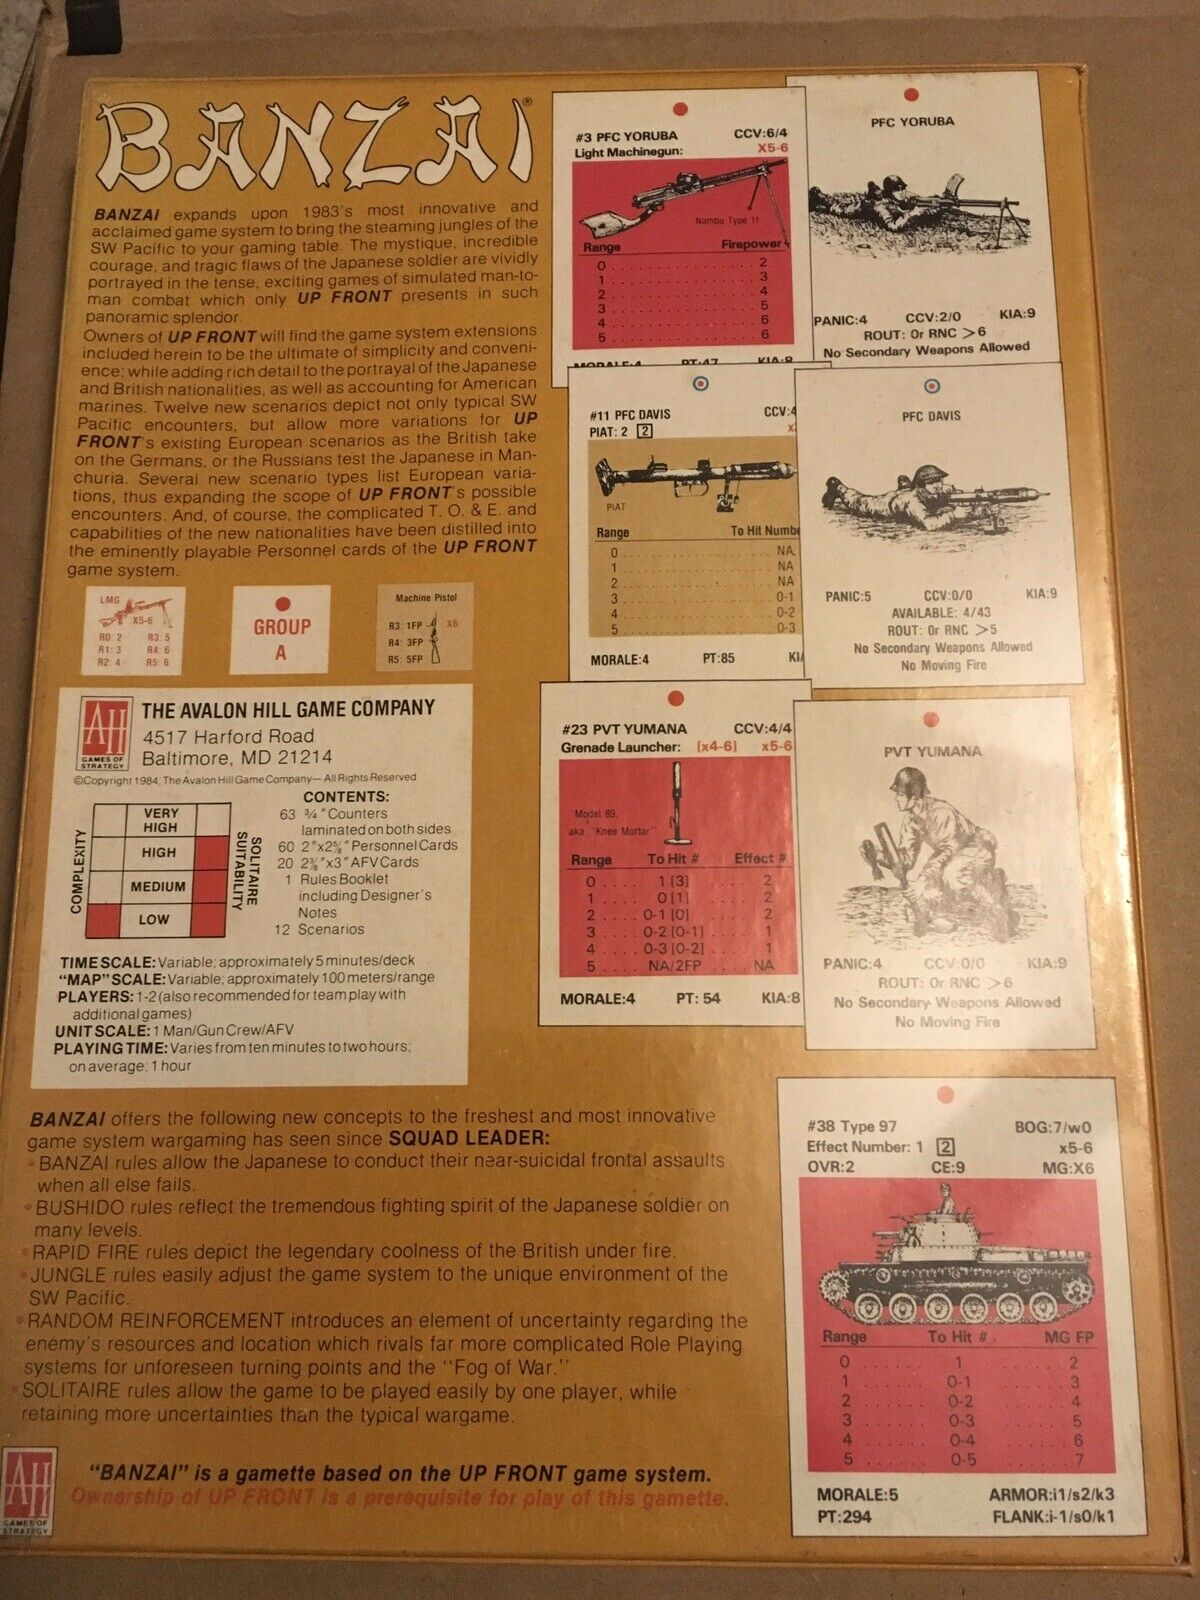 Banzai - The Game Of Tactical Warfare In In In The S.W. Pacific 1941-1945 86db1a